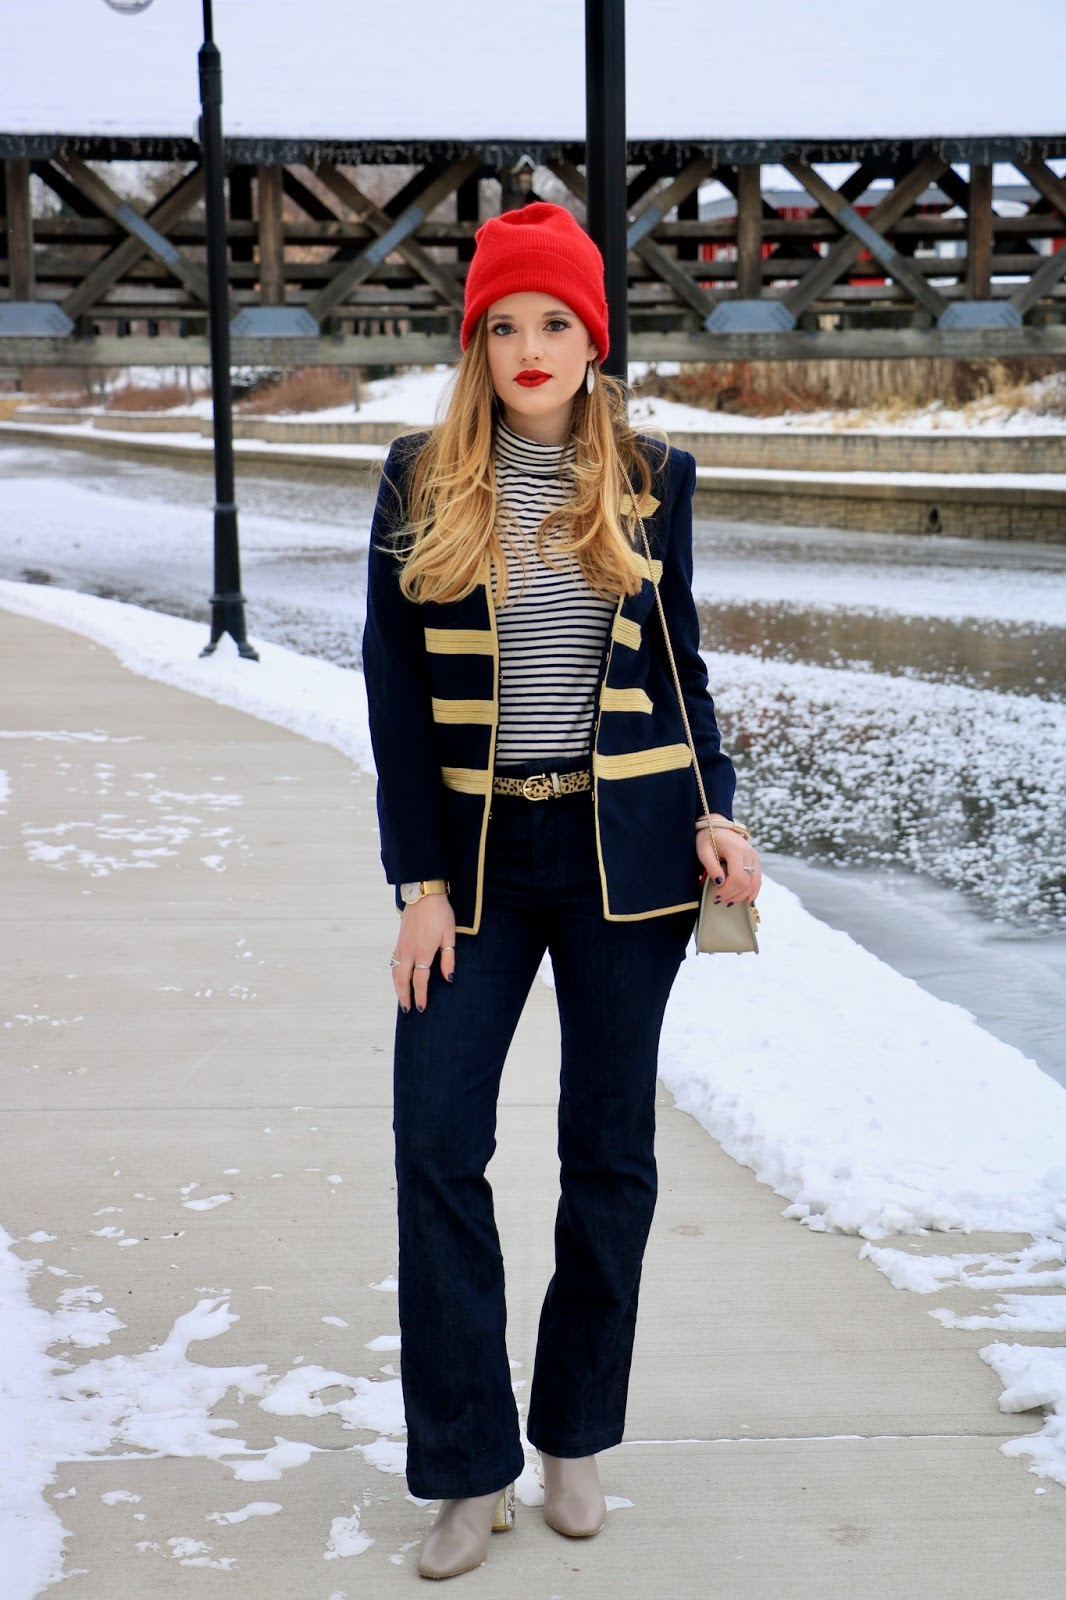 Nyc fashion blogger Kathleen Harper showing how to wear flare jeans